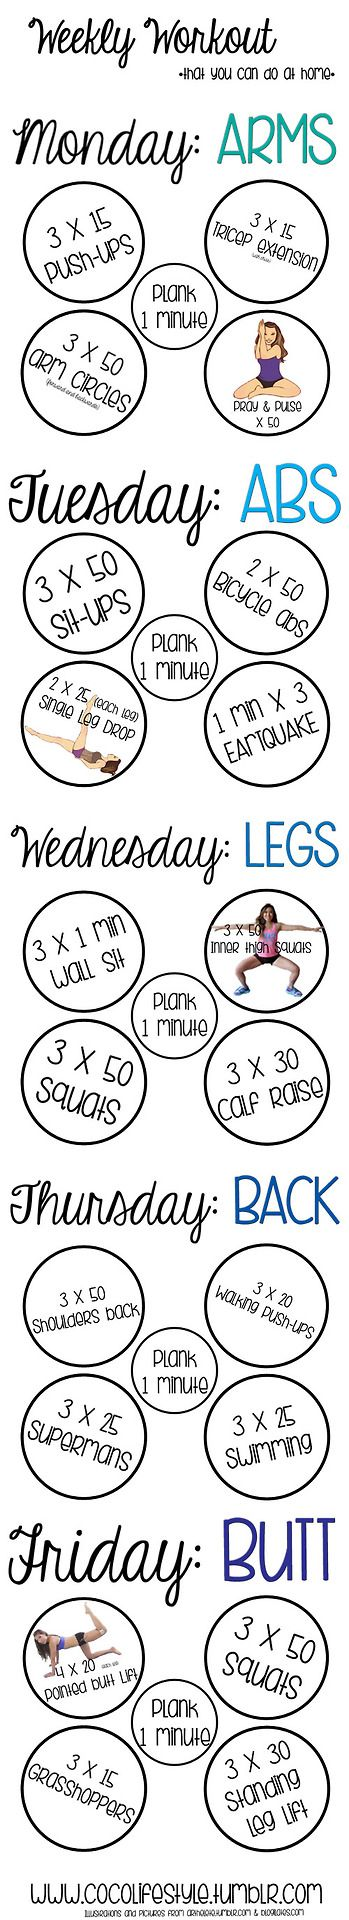 Perfect! I've been looking for something like this!   Weekly workout you can do at home